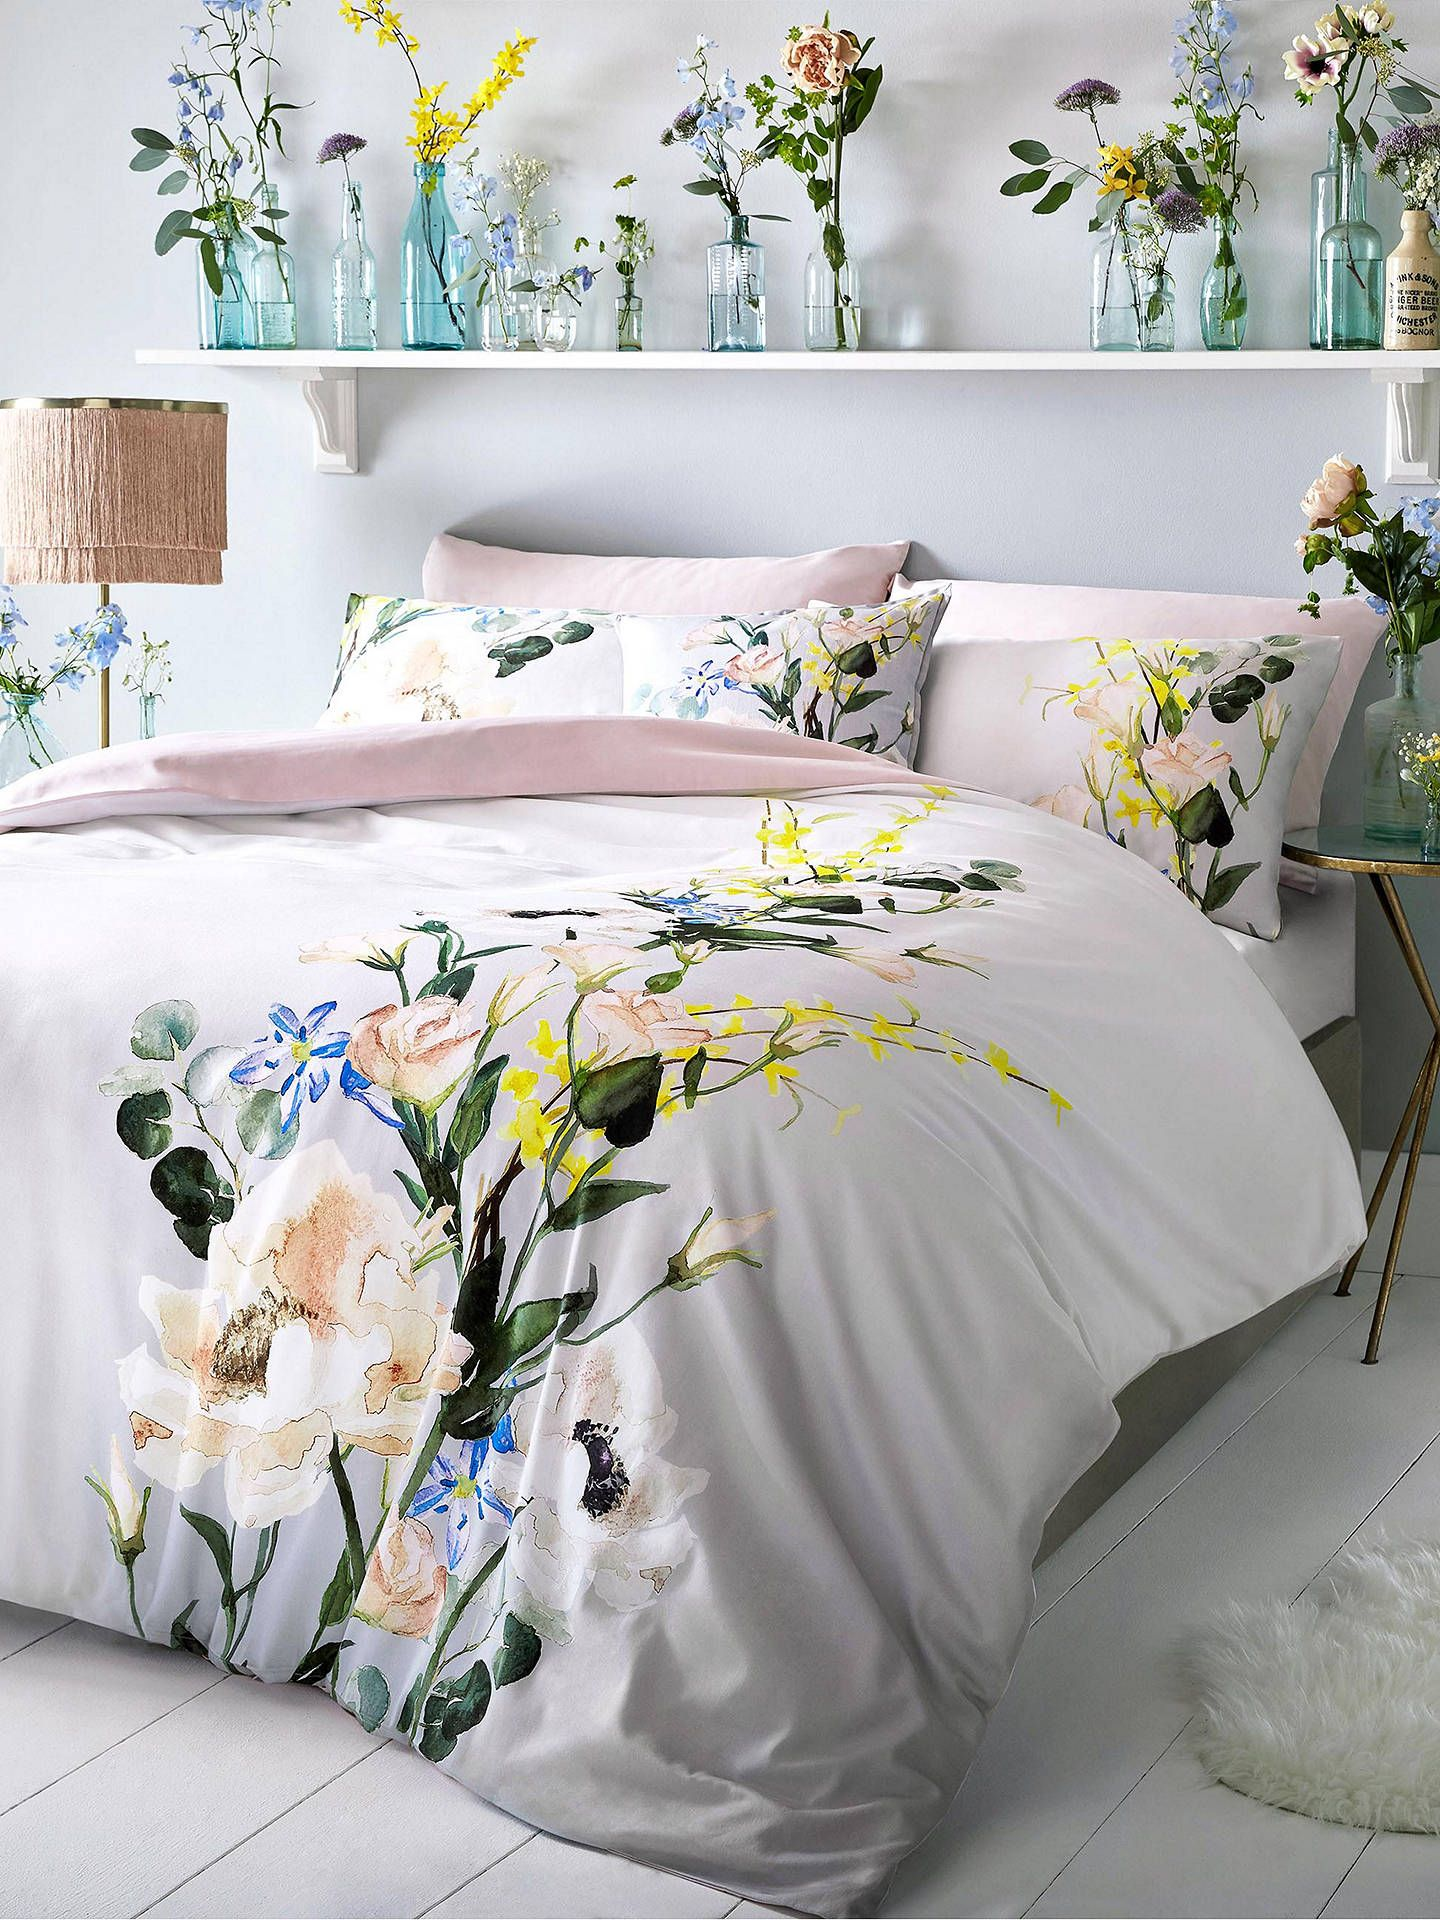 Ted Baker Elegant Bedding Duvet covers, Luxury bedding